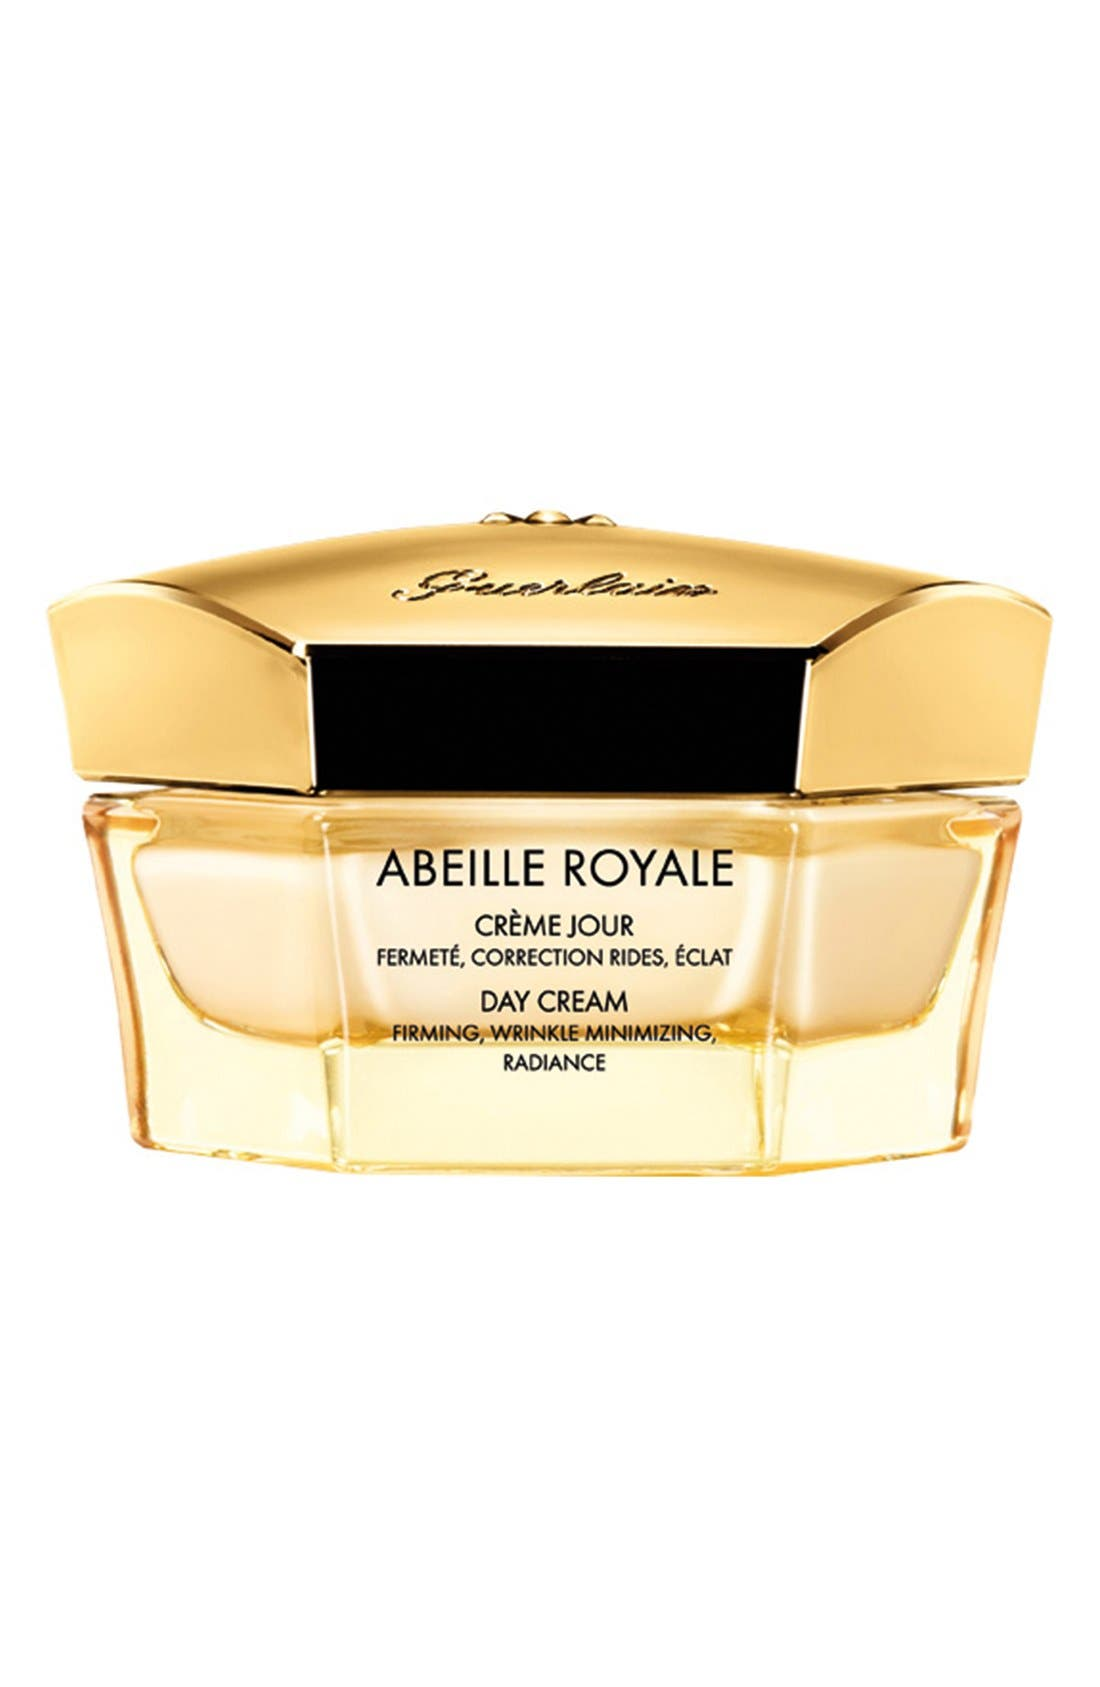 Guerlain 'Abeille Royale' Normal Day Cream